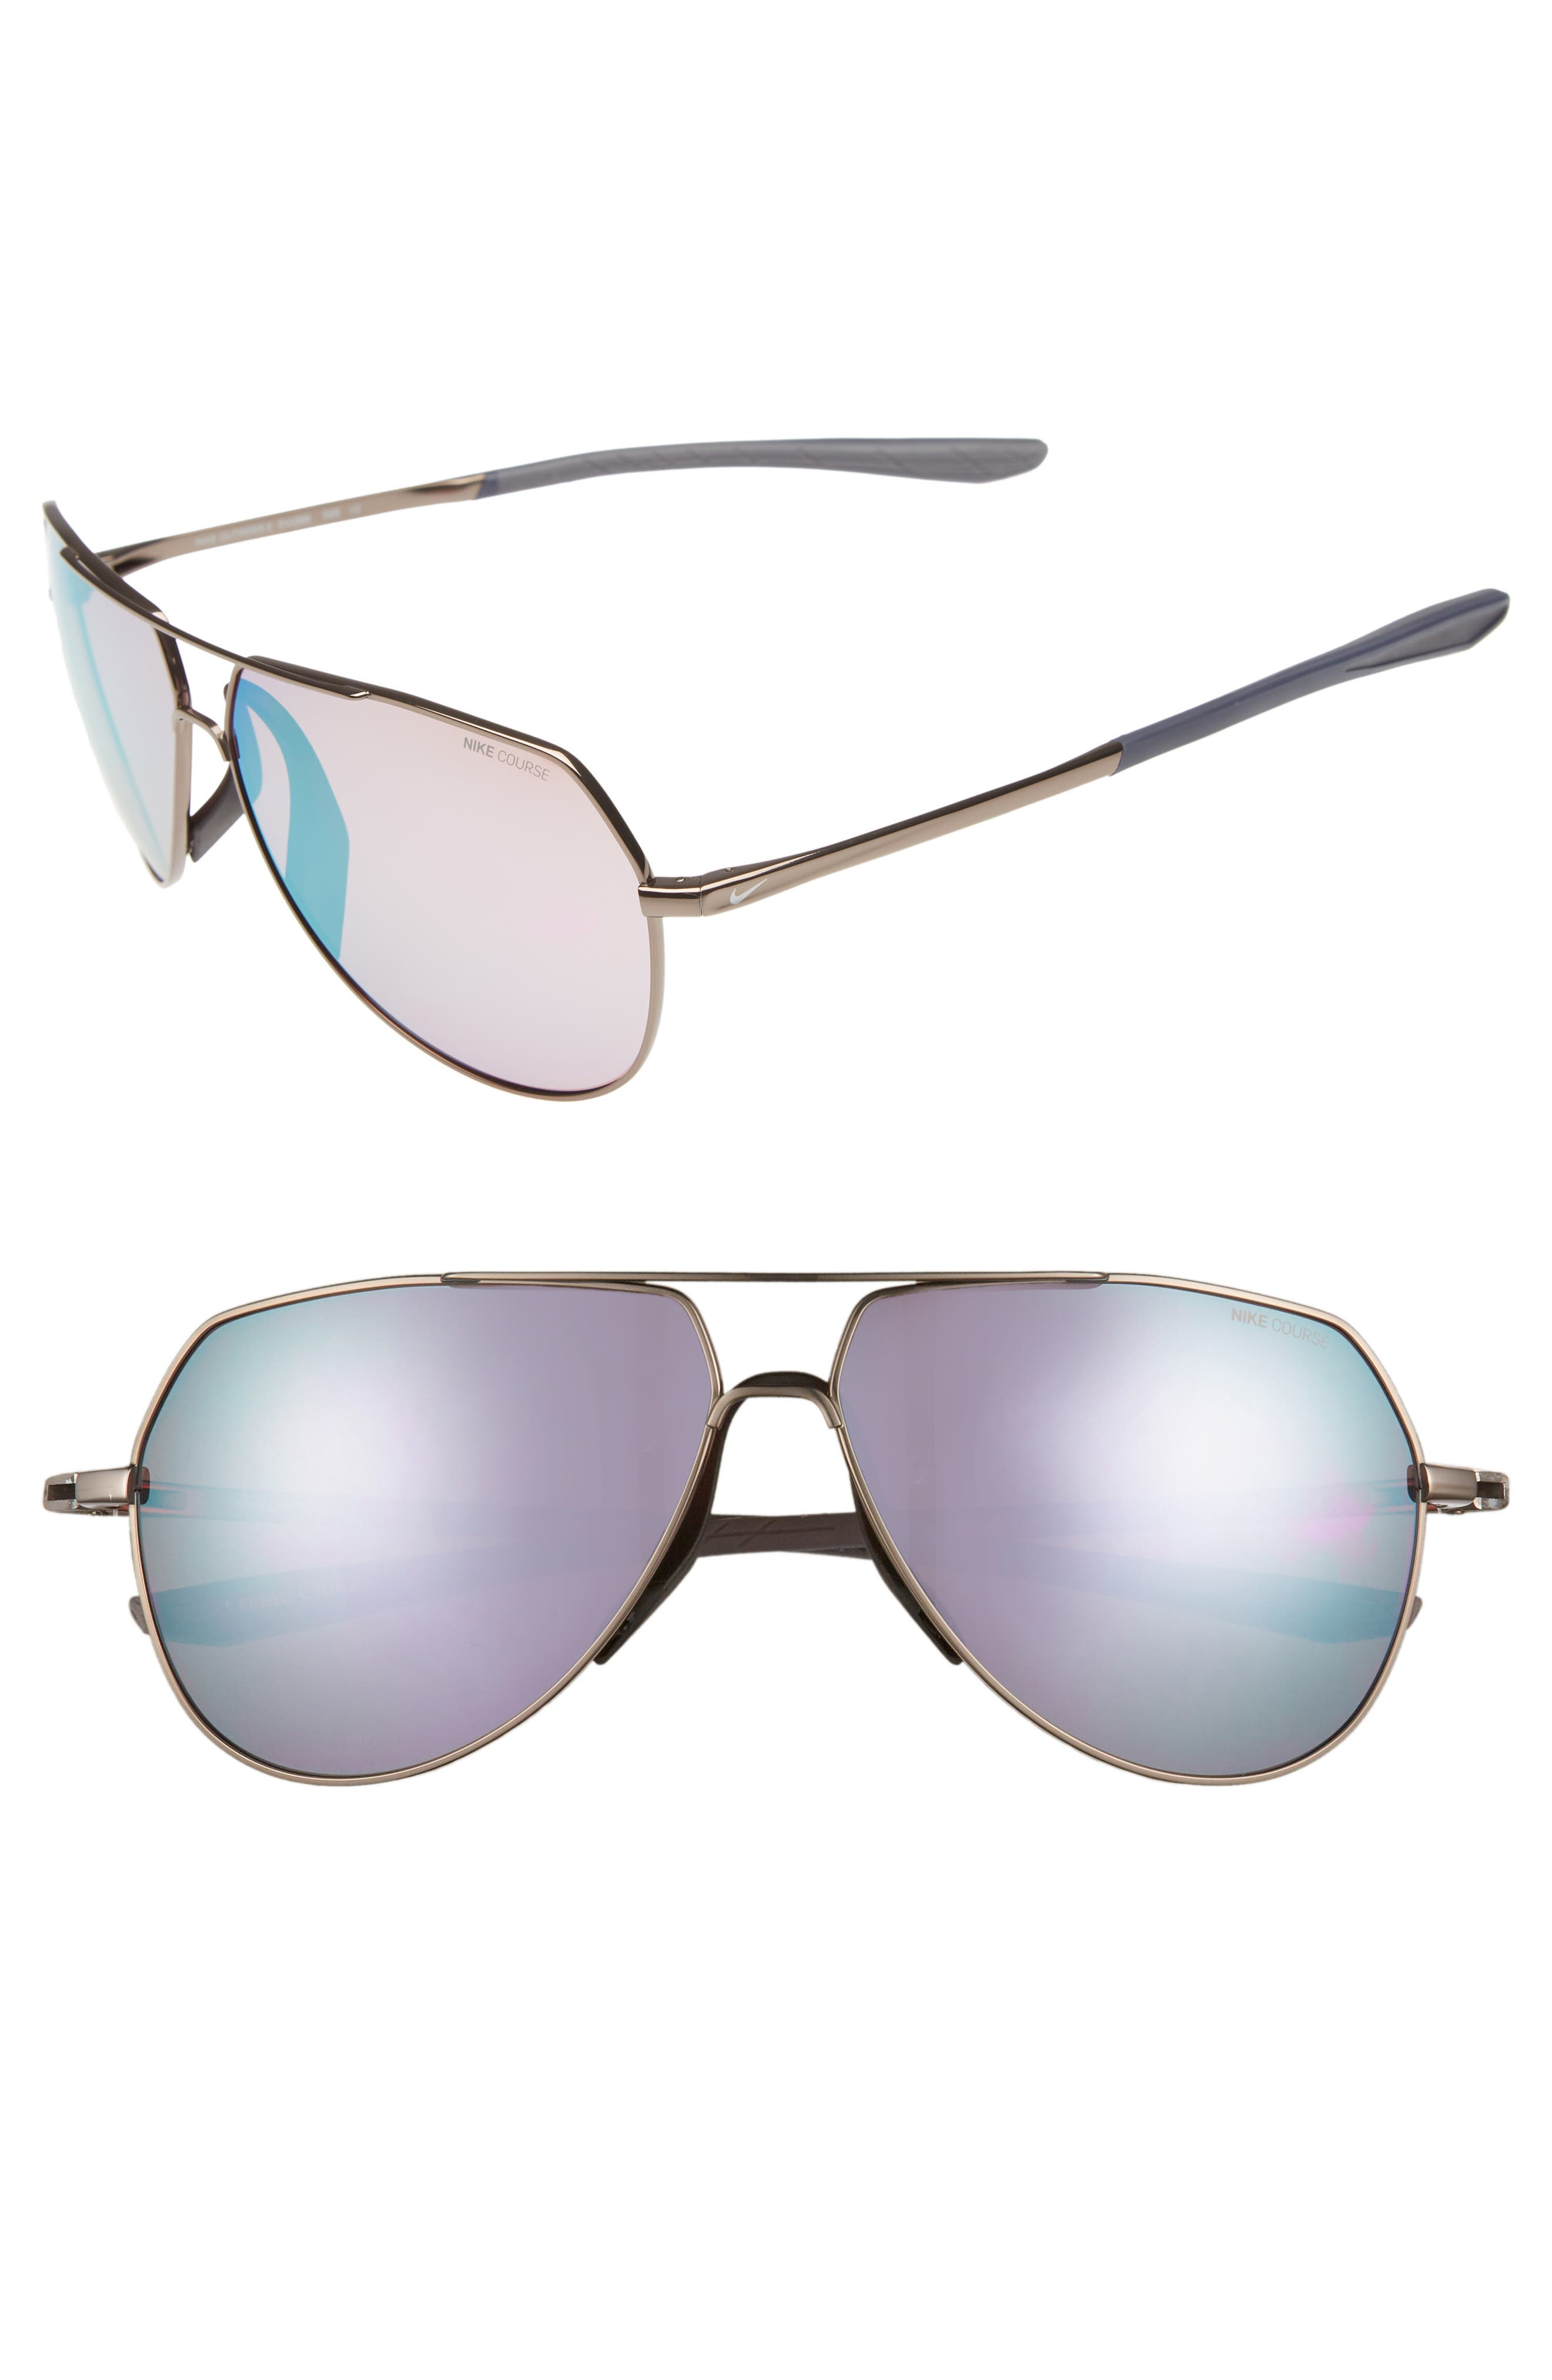 Outrider E 62mm Oversize Aviator Sunglasses,                             Main thumbnail 1, color,                             PEWTER/ GOLF MILKY BLUE